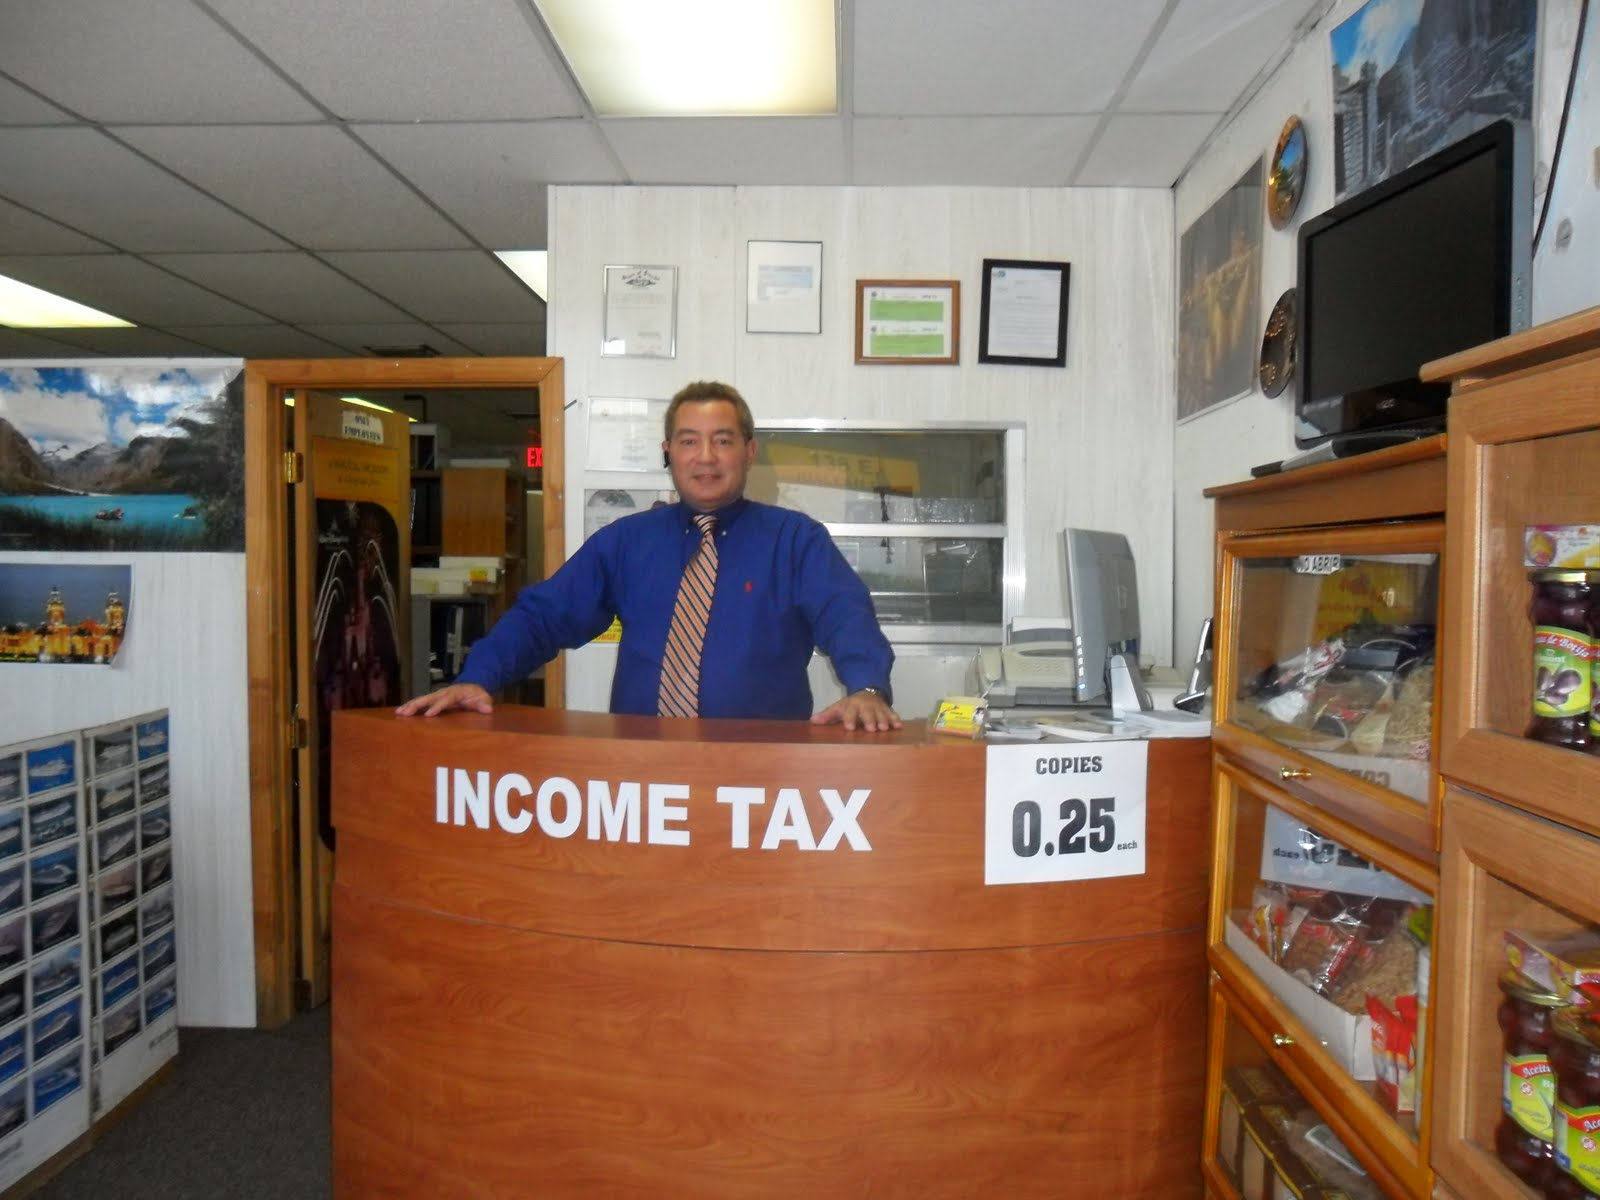 Jorge Income Taxes Oficinas Temporales